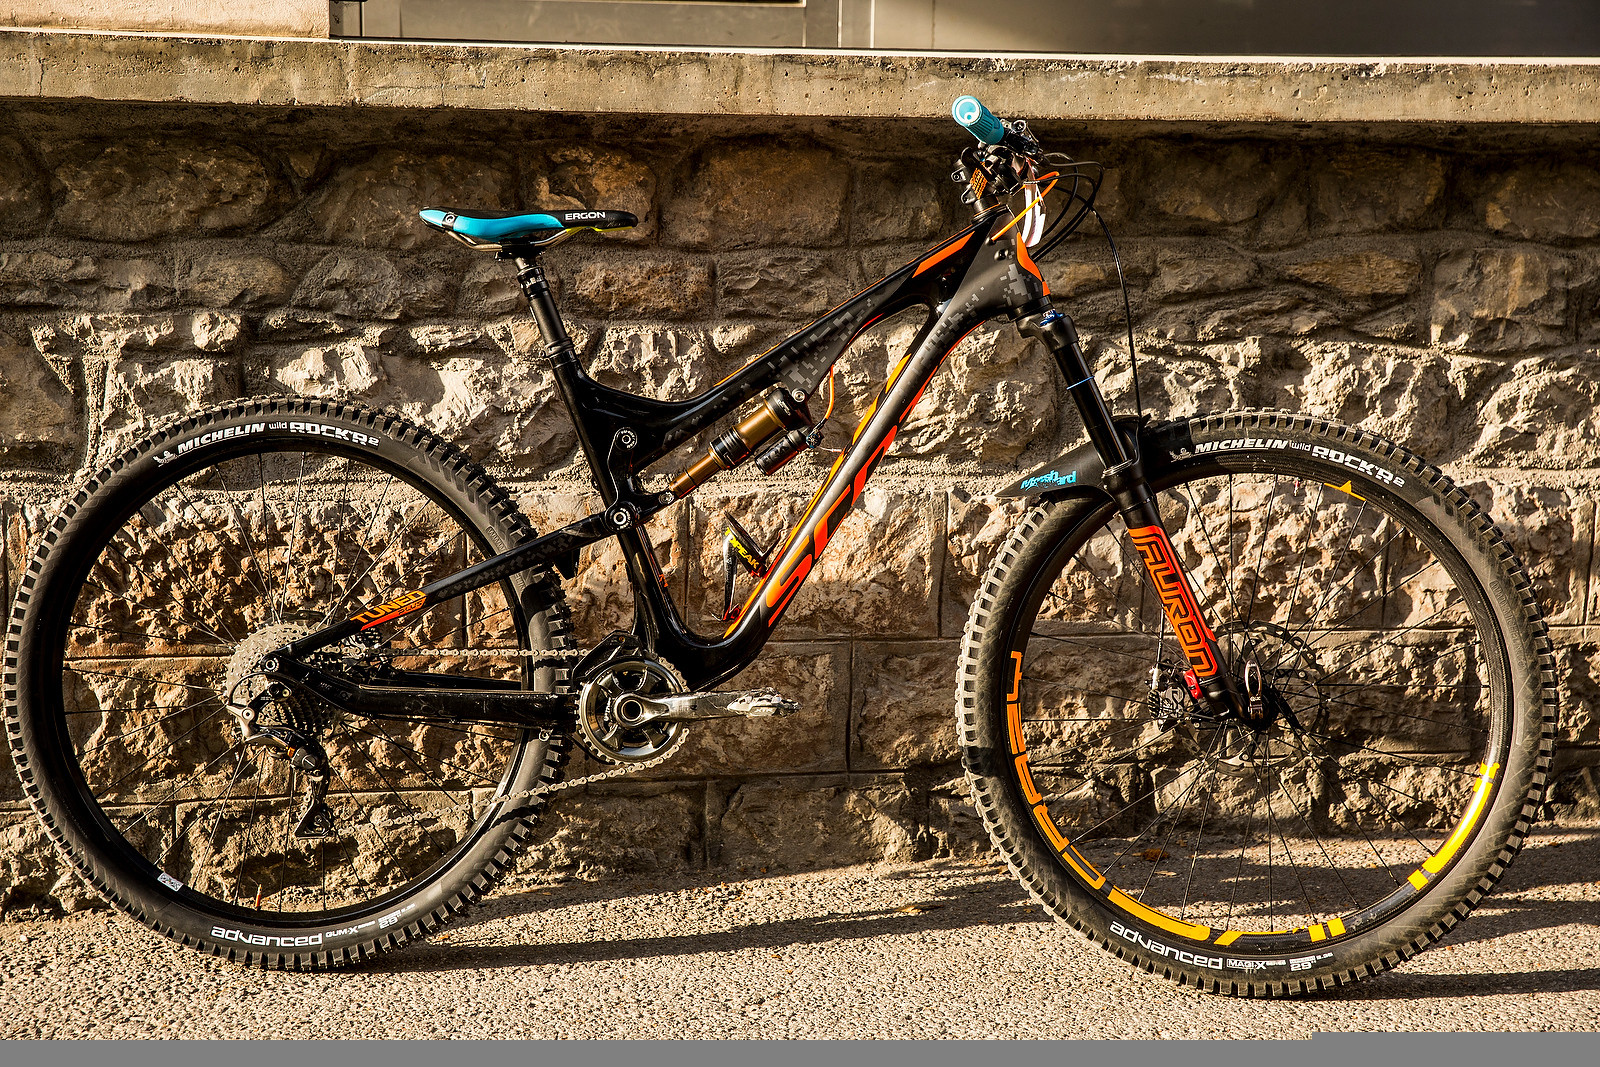 Remy Absalon's Scott Genius LT 27.5 Plus with 29-inch Wheels - PIT BITS - Enduro World Series, Samoens, France - Mountain Biking Pictures - Vital MTB